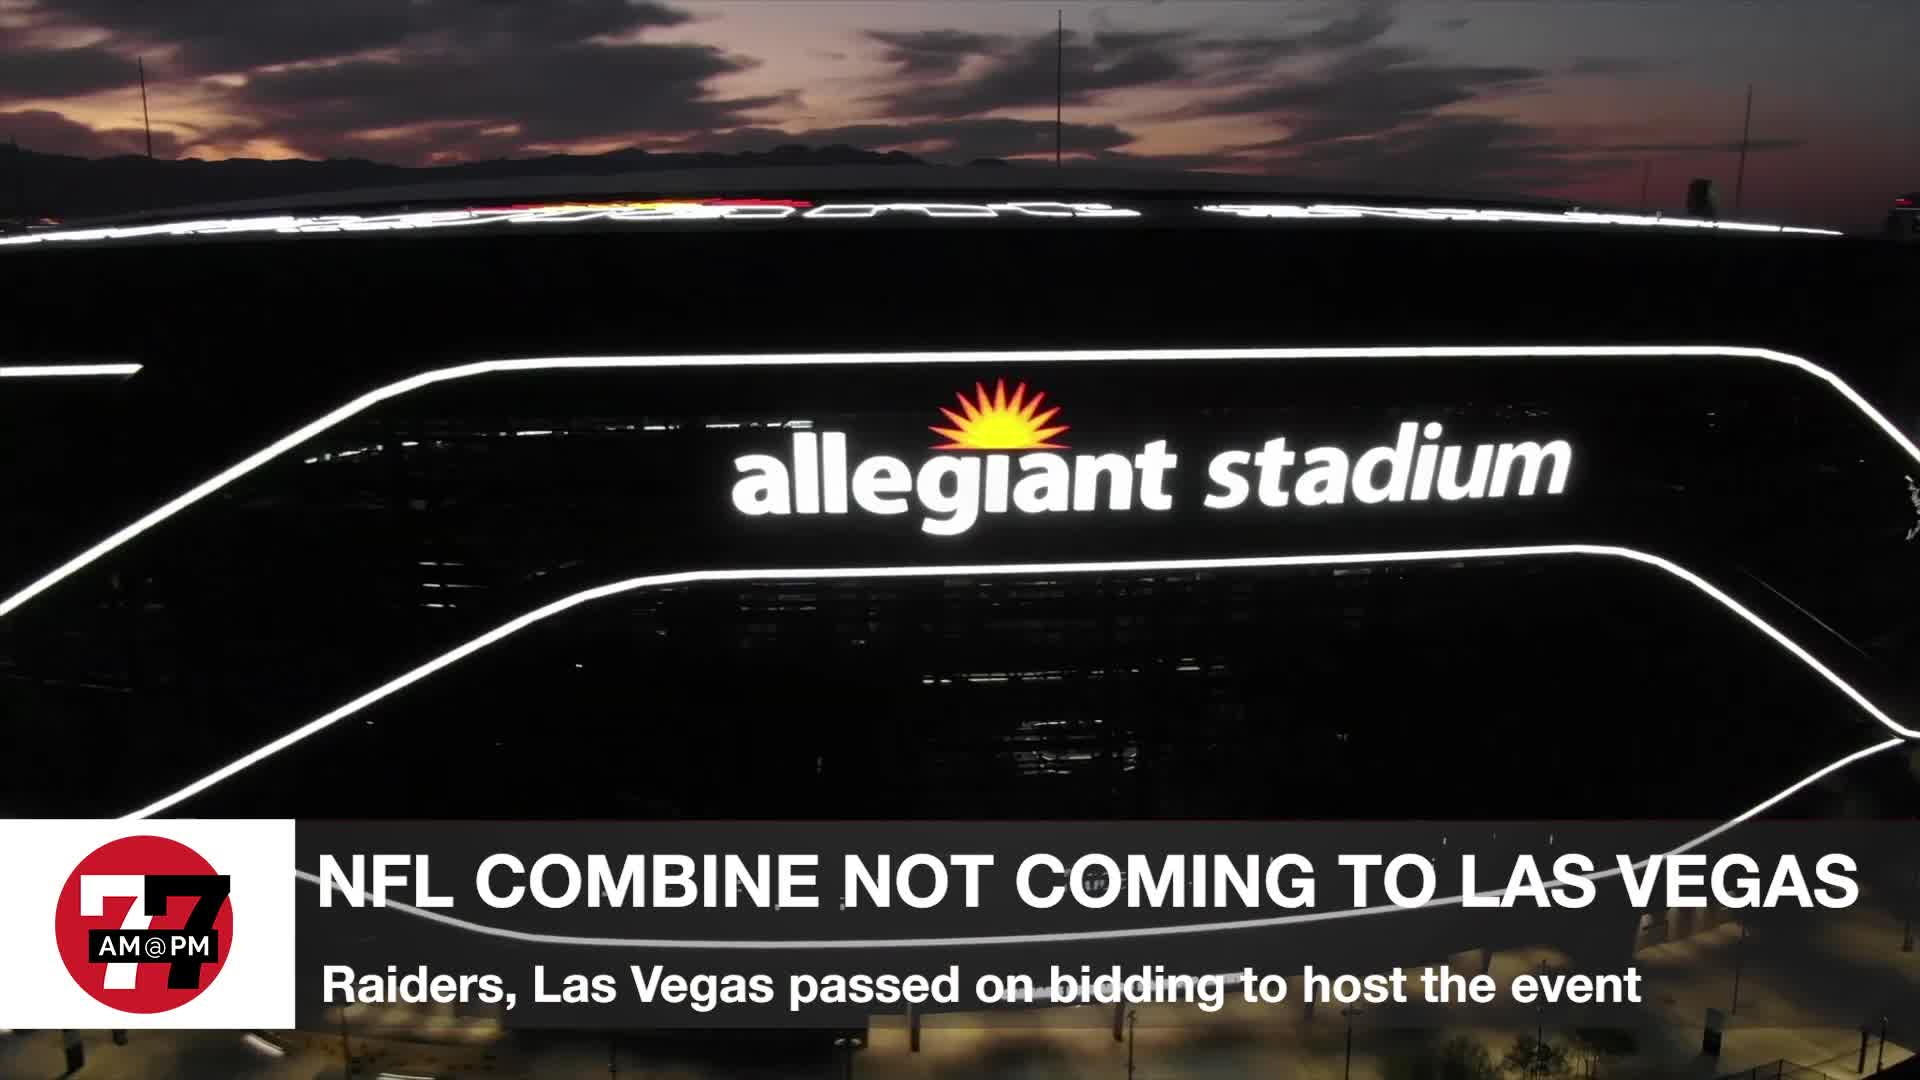 7@7PM NFL Combine Not Coming to Las Vegas